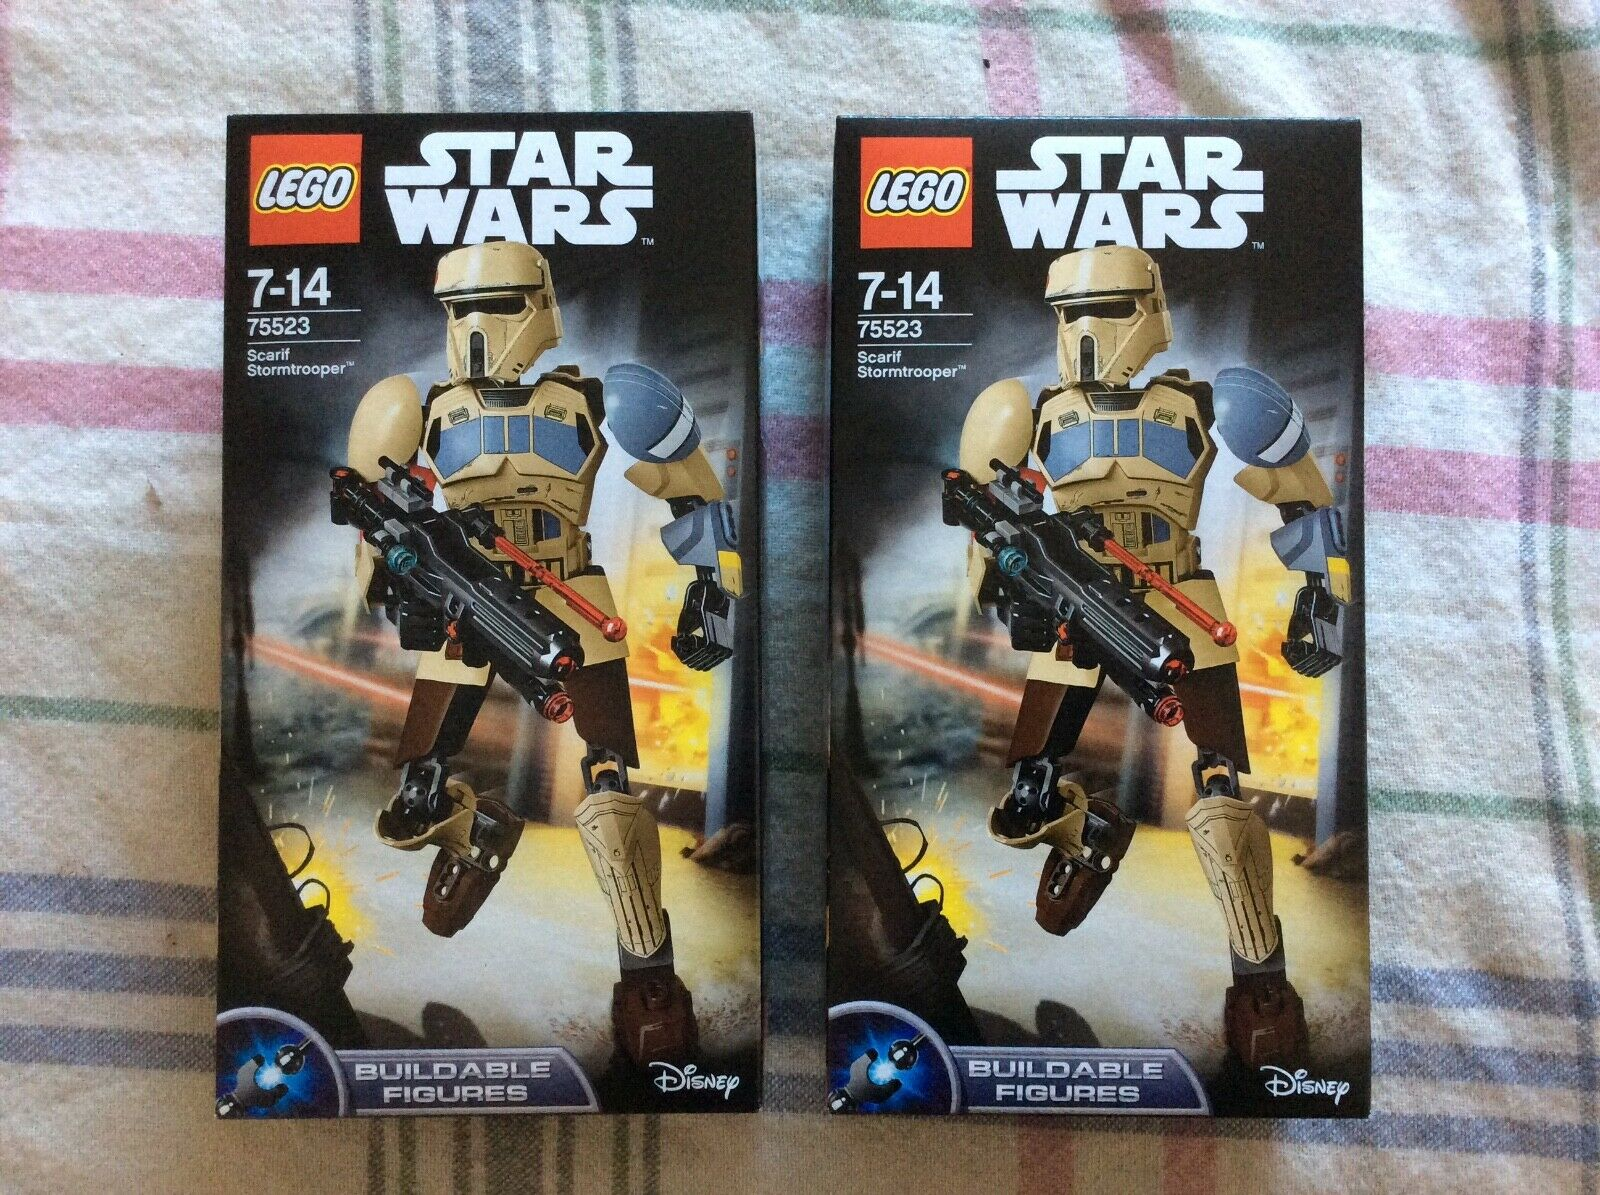 LEGO STAR WARS BUILDABLE FIGURE - 75523 - SCARIF STORMTROOPER - BNIB x 2